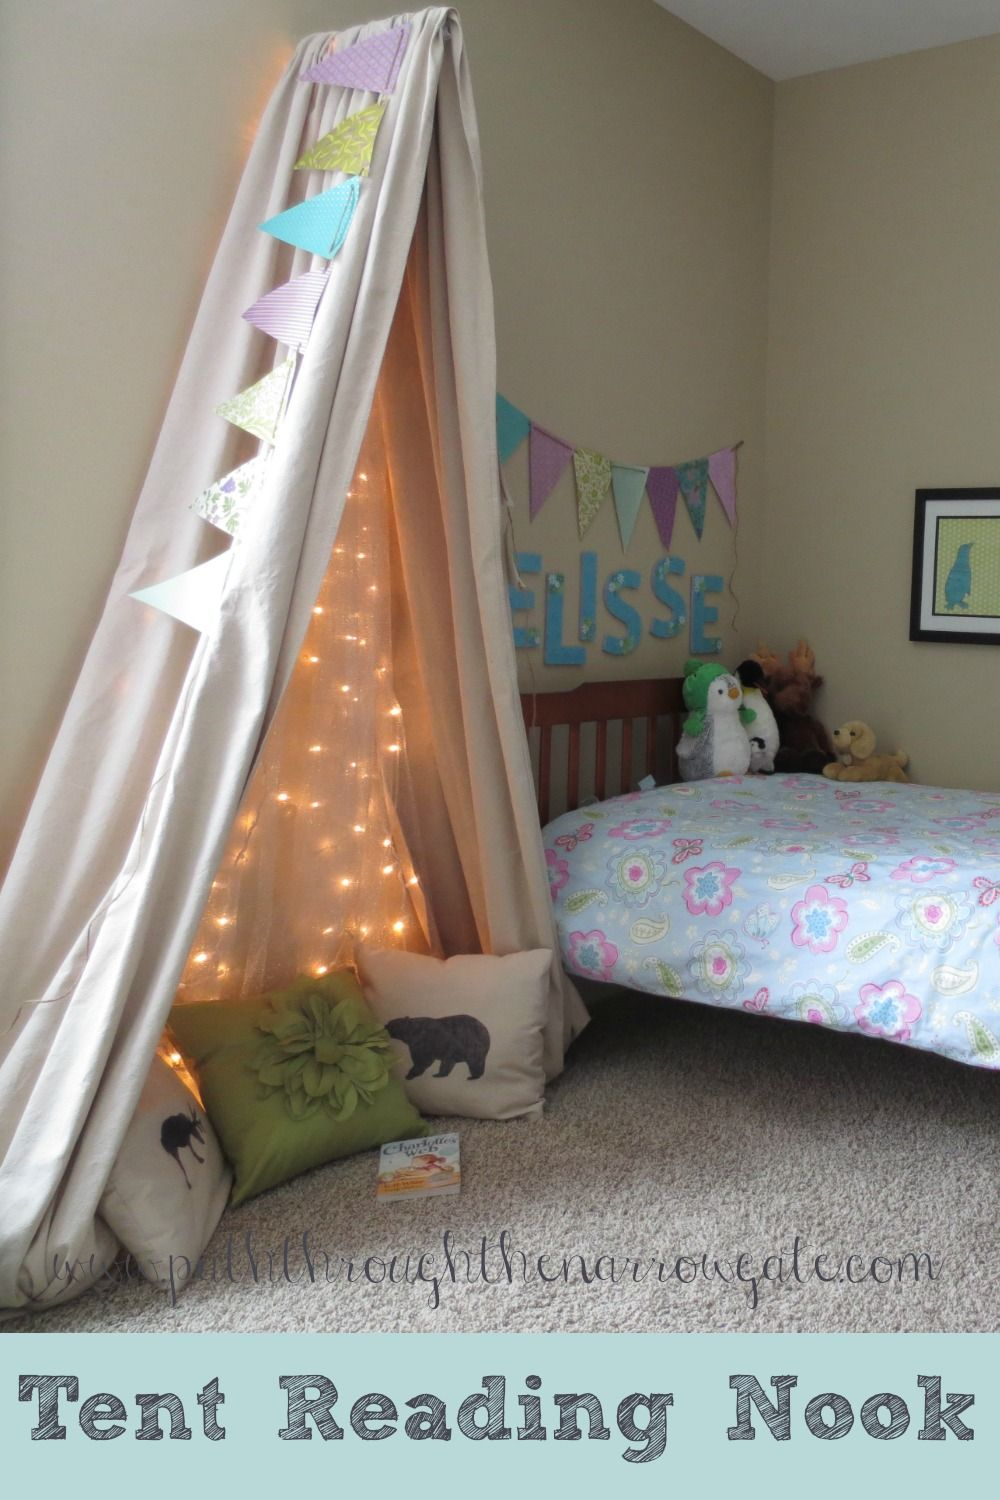 25 Sweet Reading Nook Ideas For Girls Decoracion Para Ninos